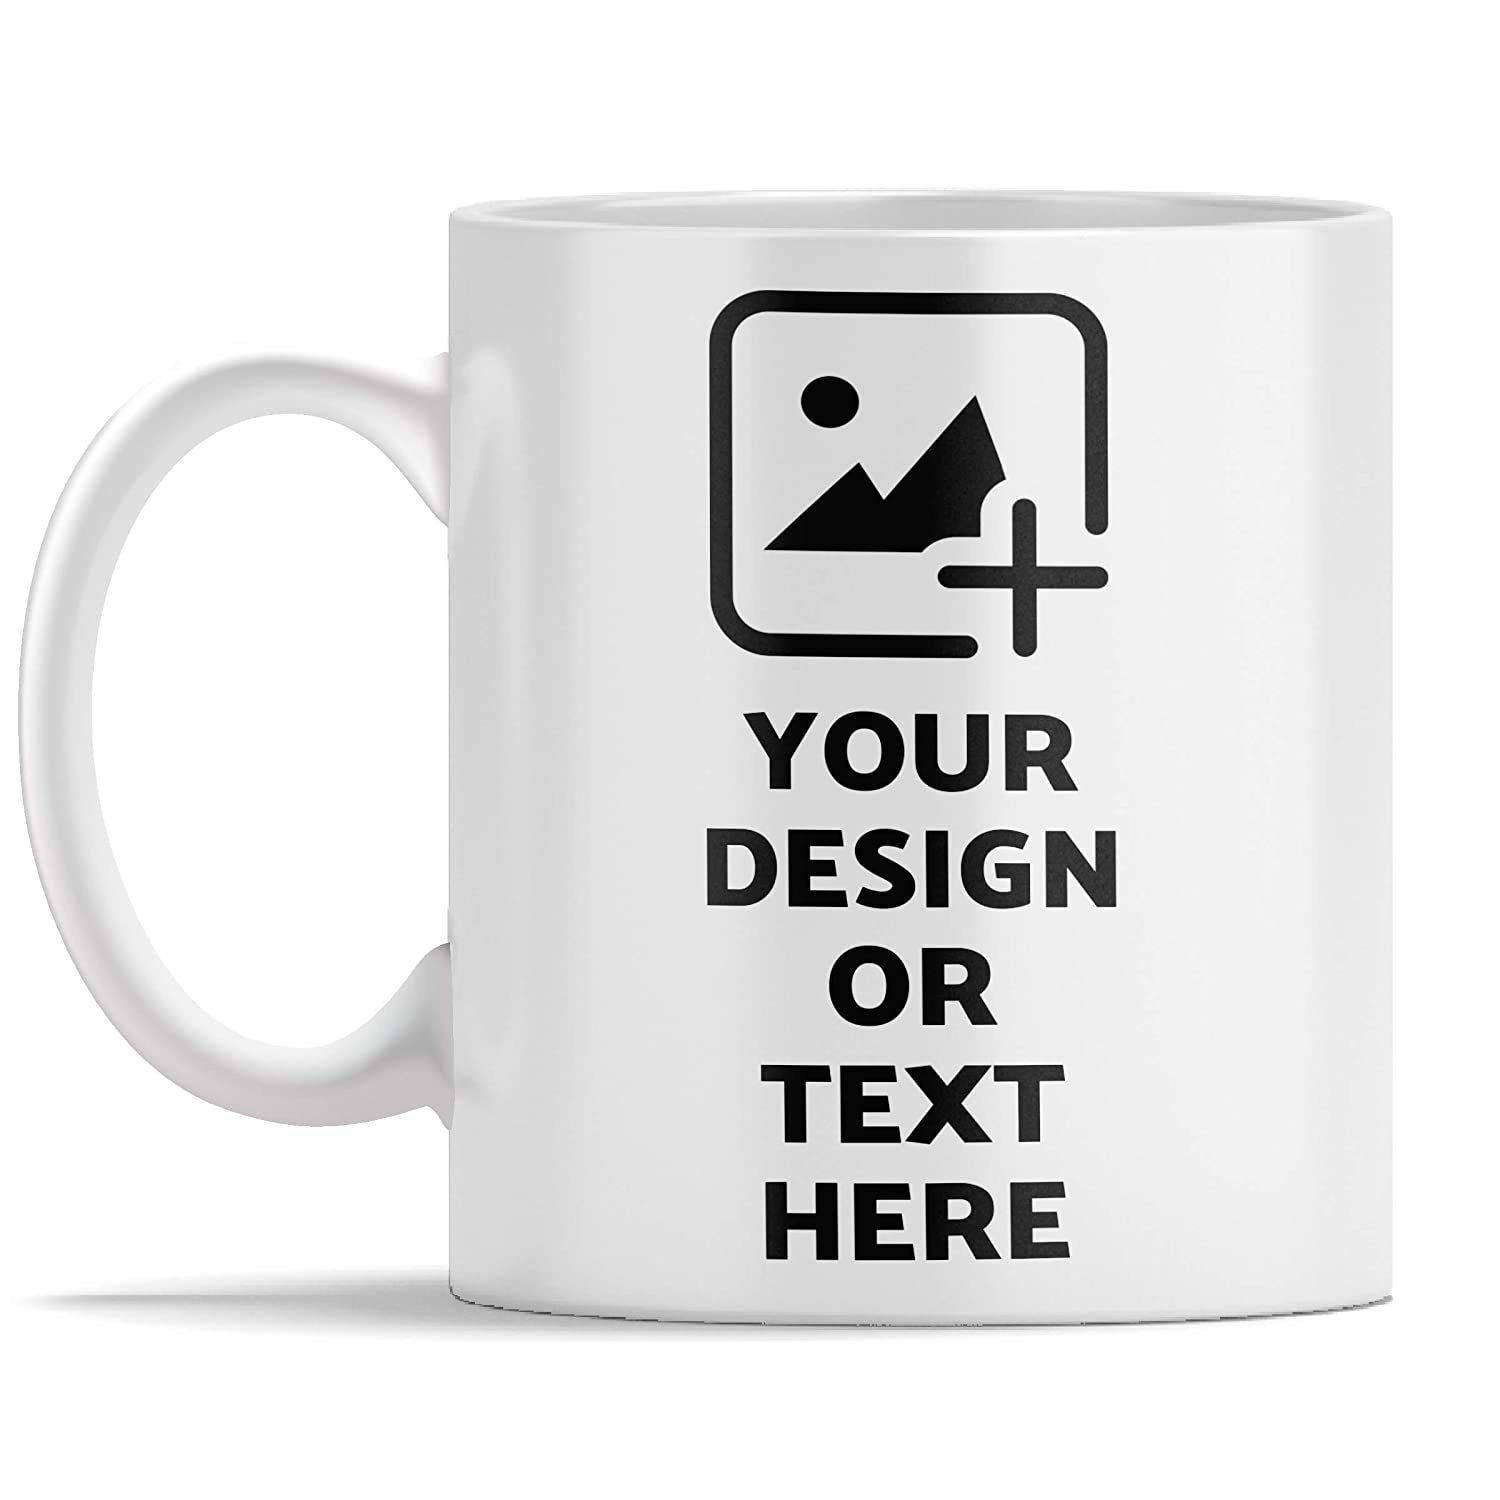 White customisable mug that says 'your design or text here'